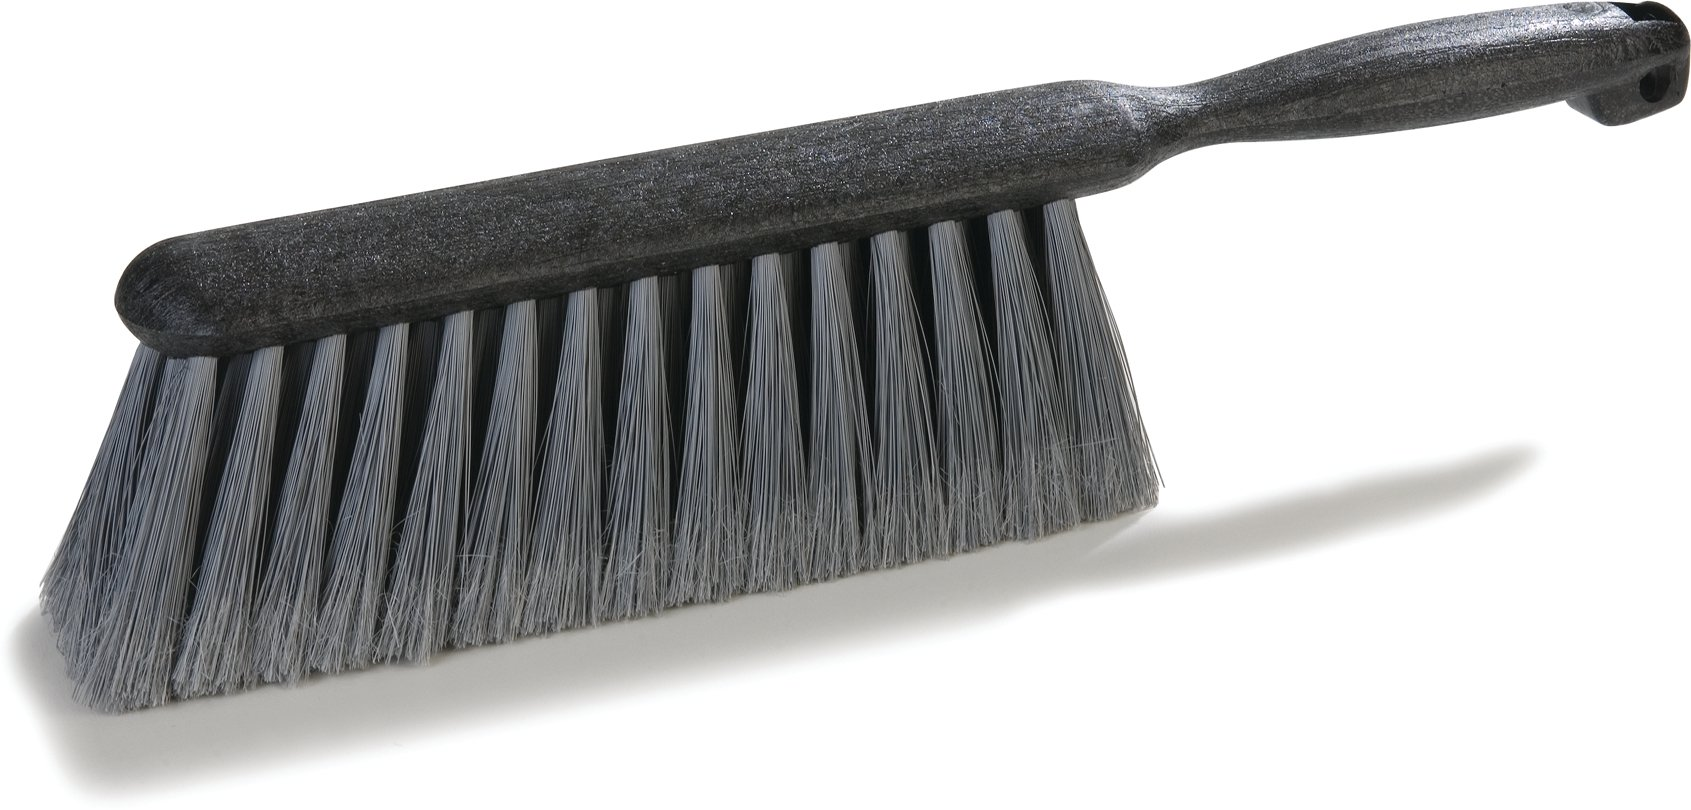 Carlisle 3621123 Flo-Pac Counter/Bench Brush With Flagged Polypropylene Bristles 8'' - Gray (12 PER CASE)